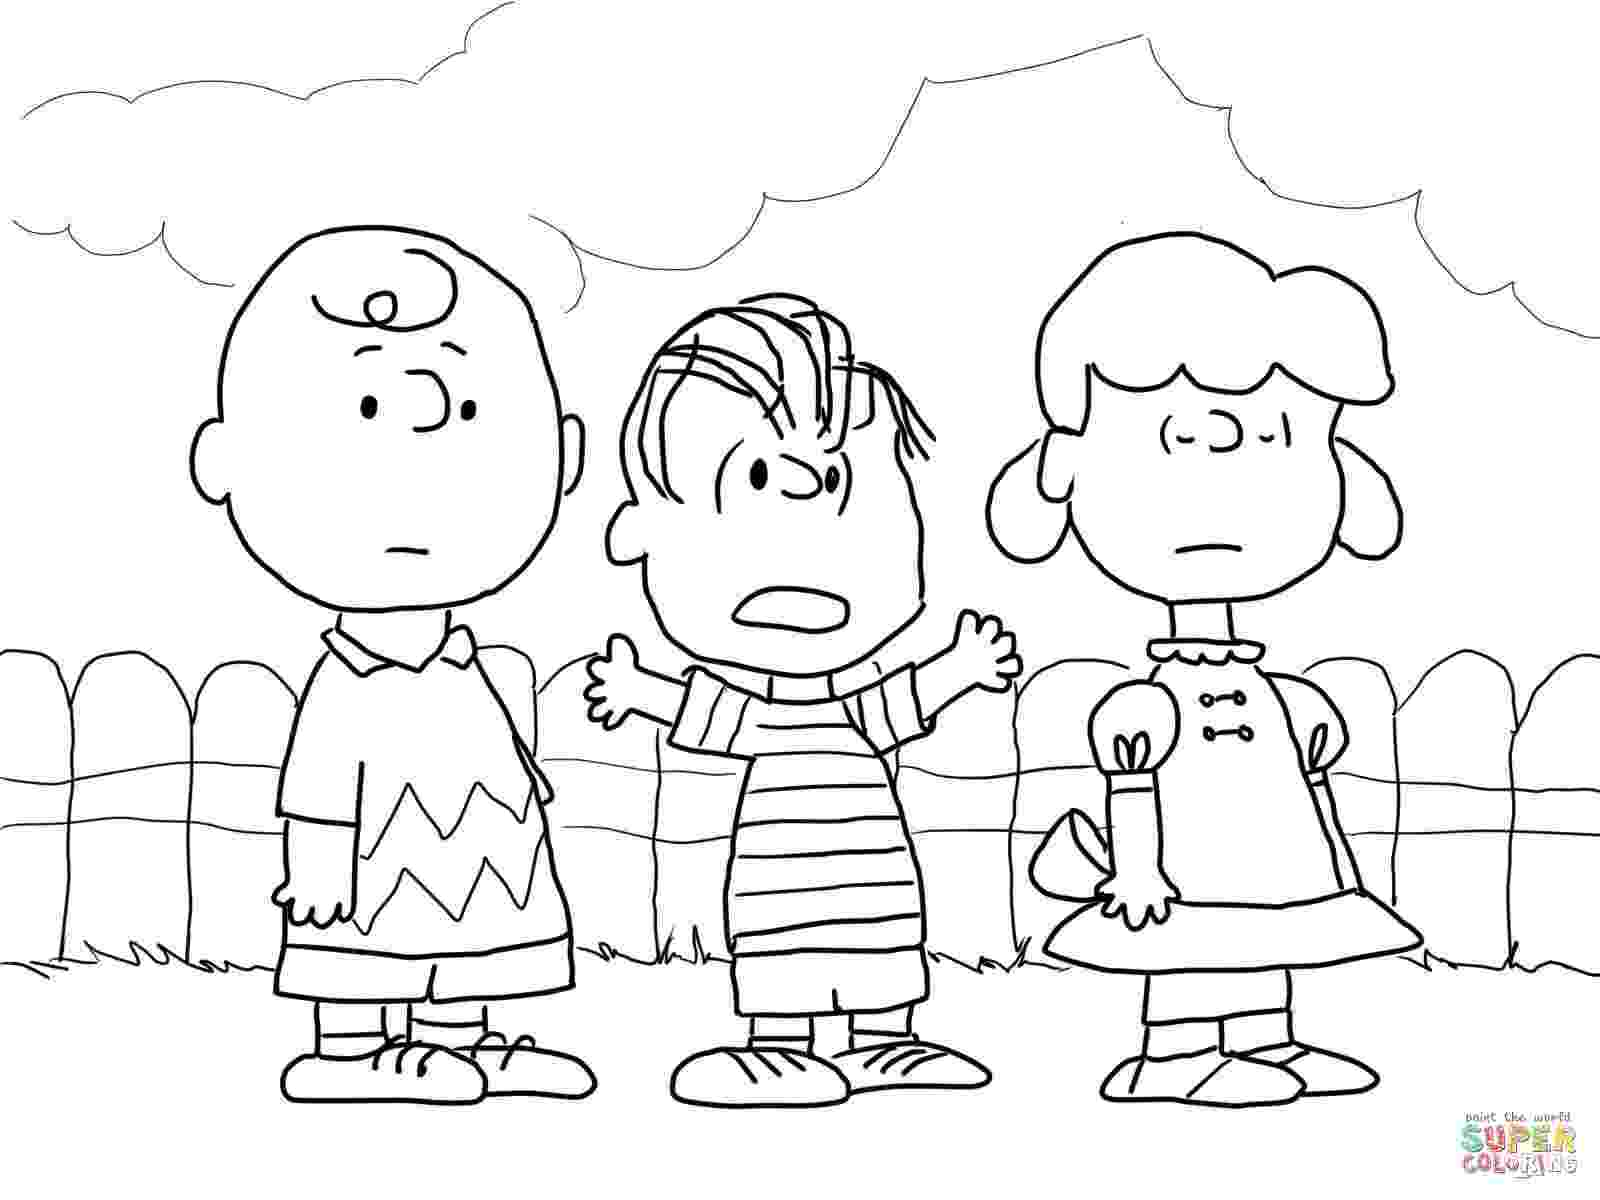 peanuts characters coloring pages 208 best images about peanuts gang classroom theme on coloring characters pages peanuts